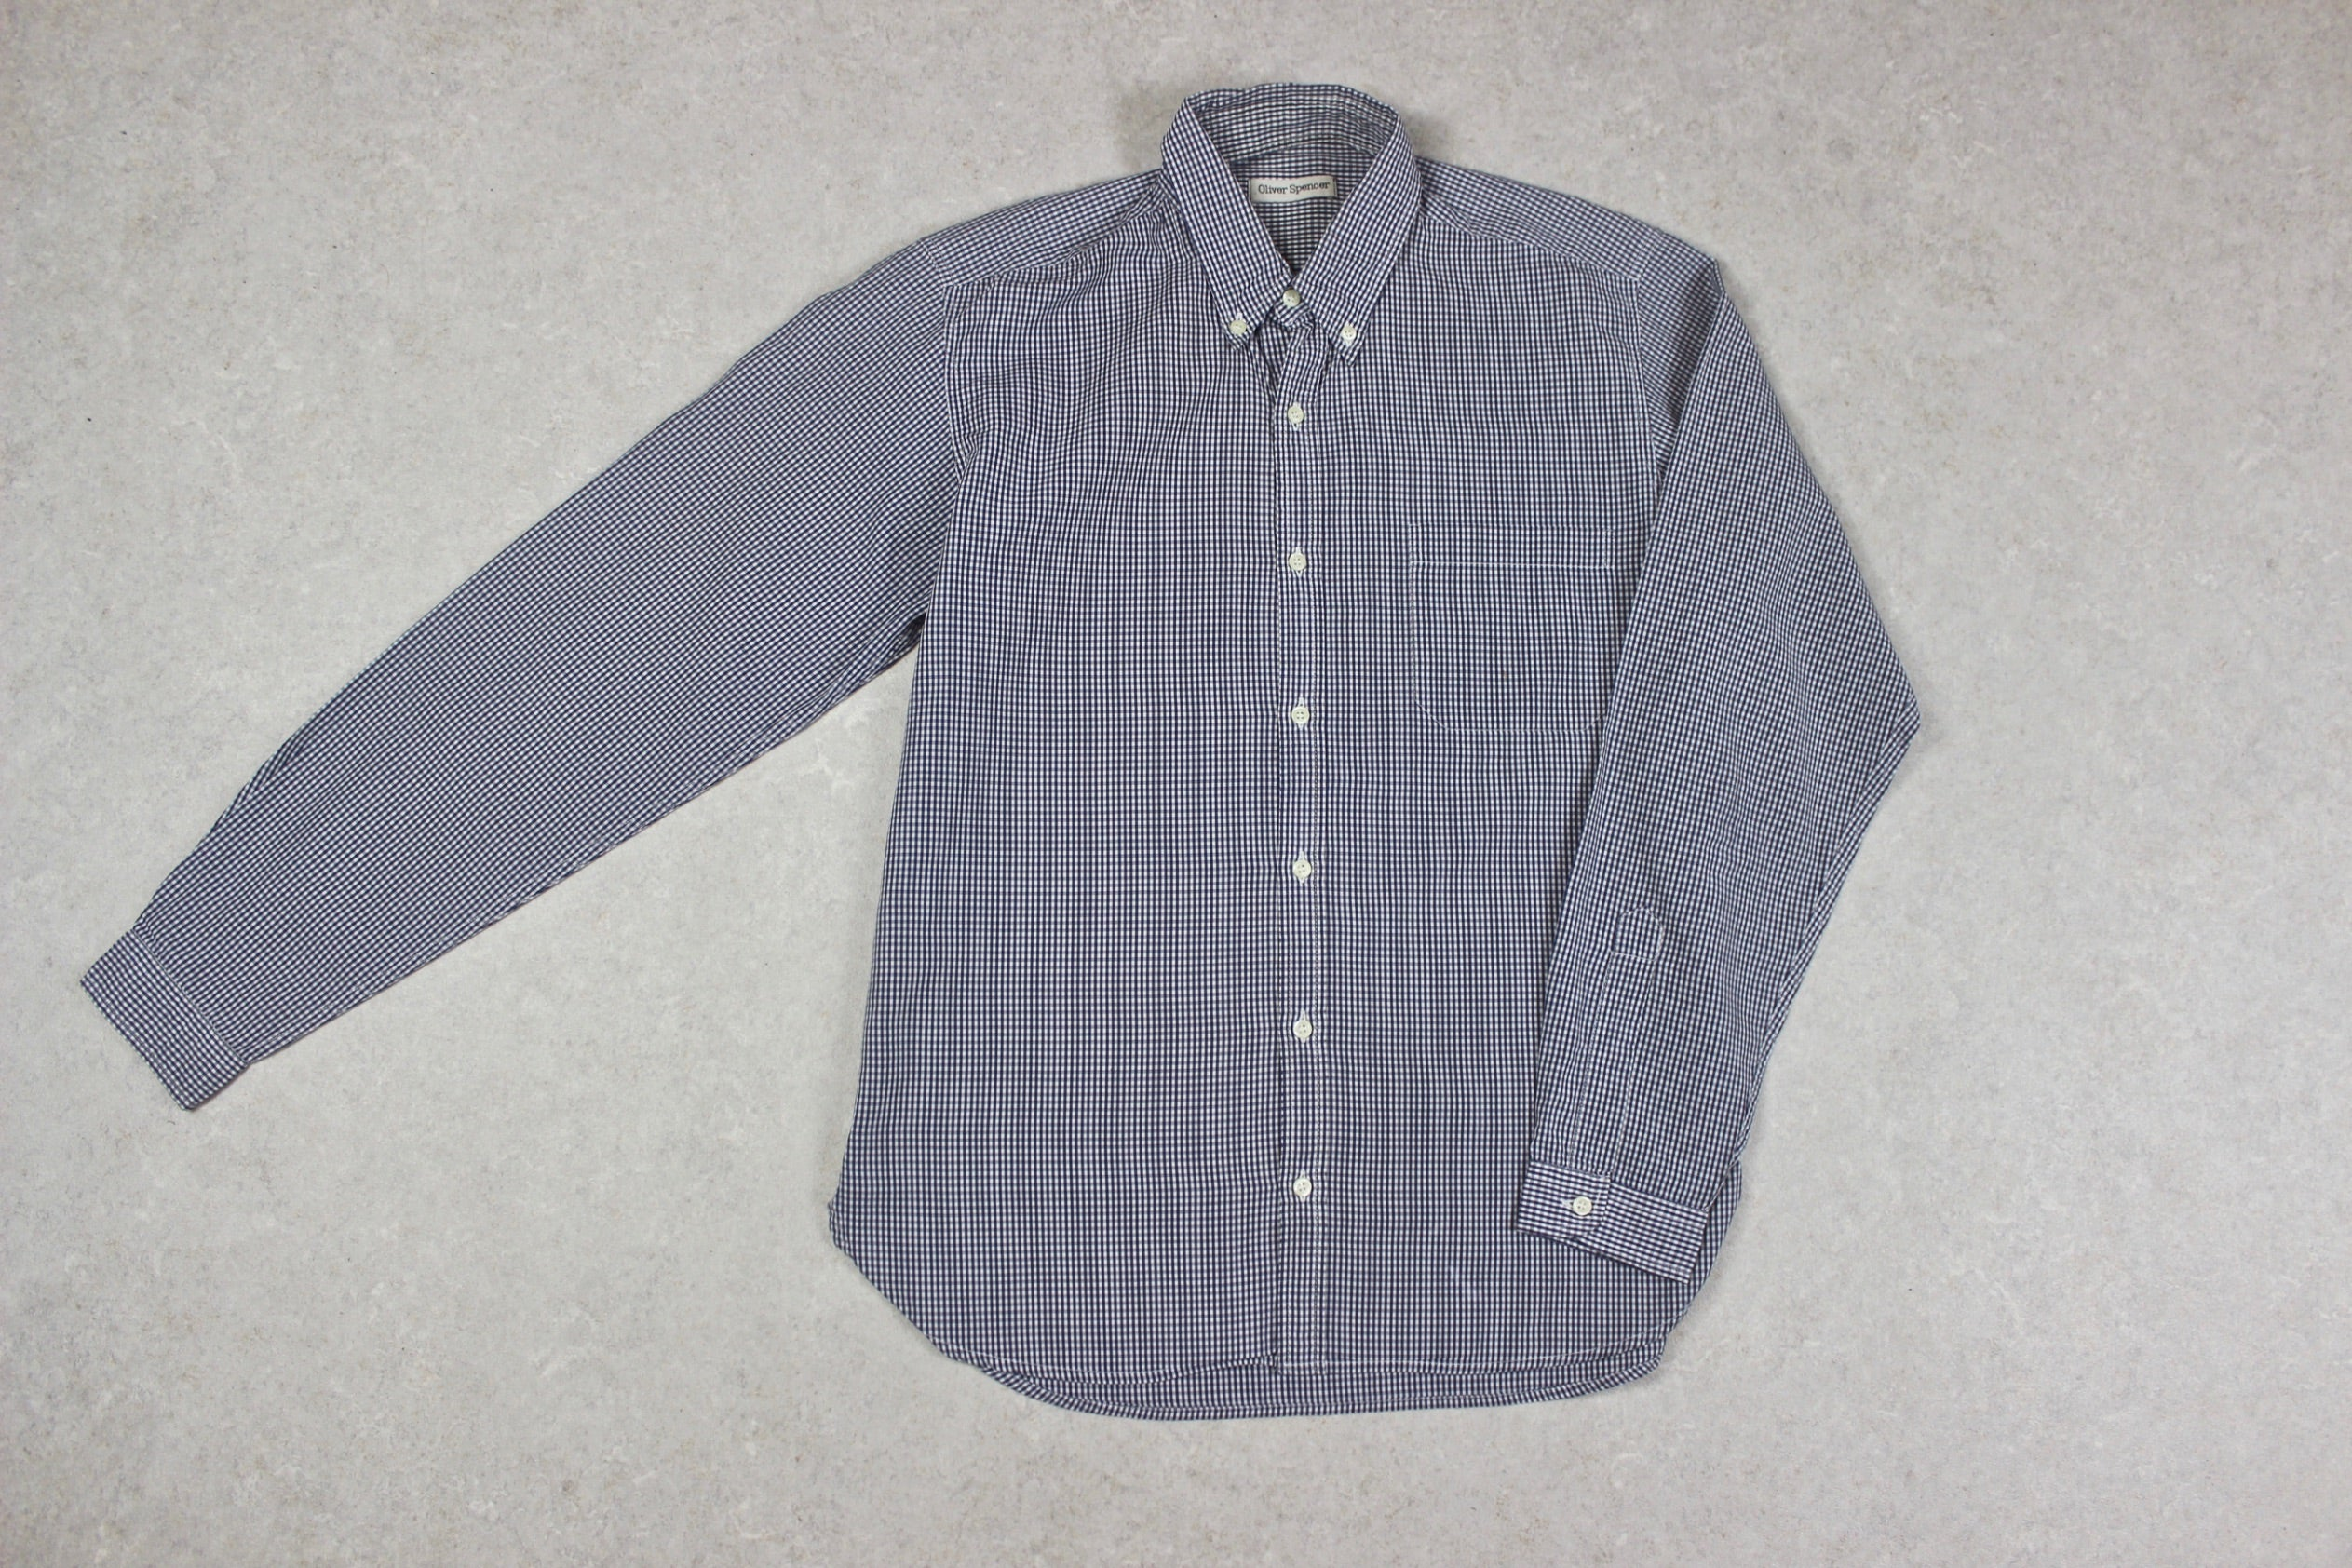 Oliver Spencer - Shirt - Navy Blue/White Gingham Check - 14.5/Extra Small